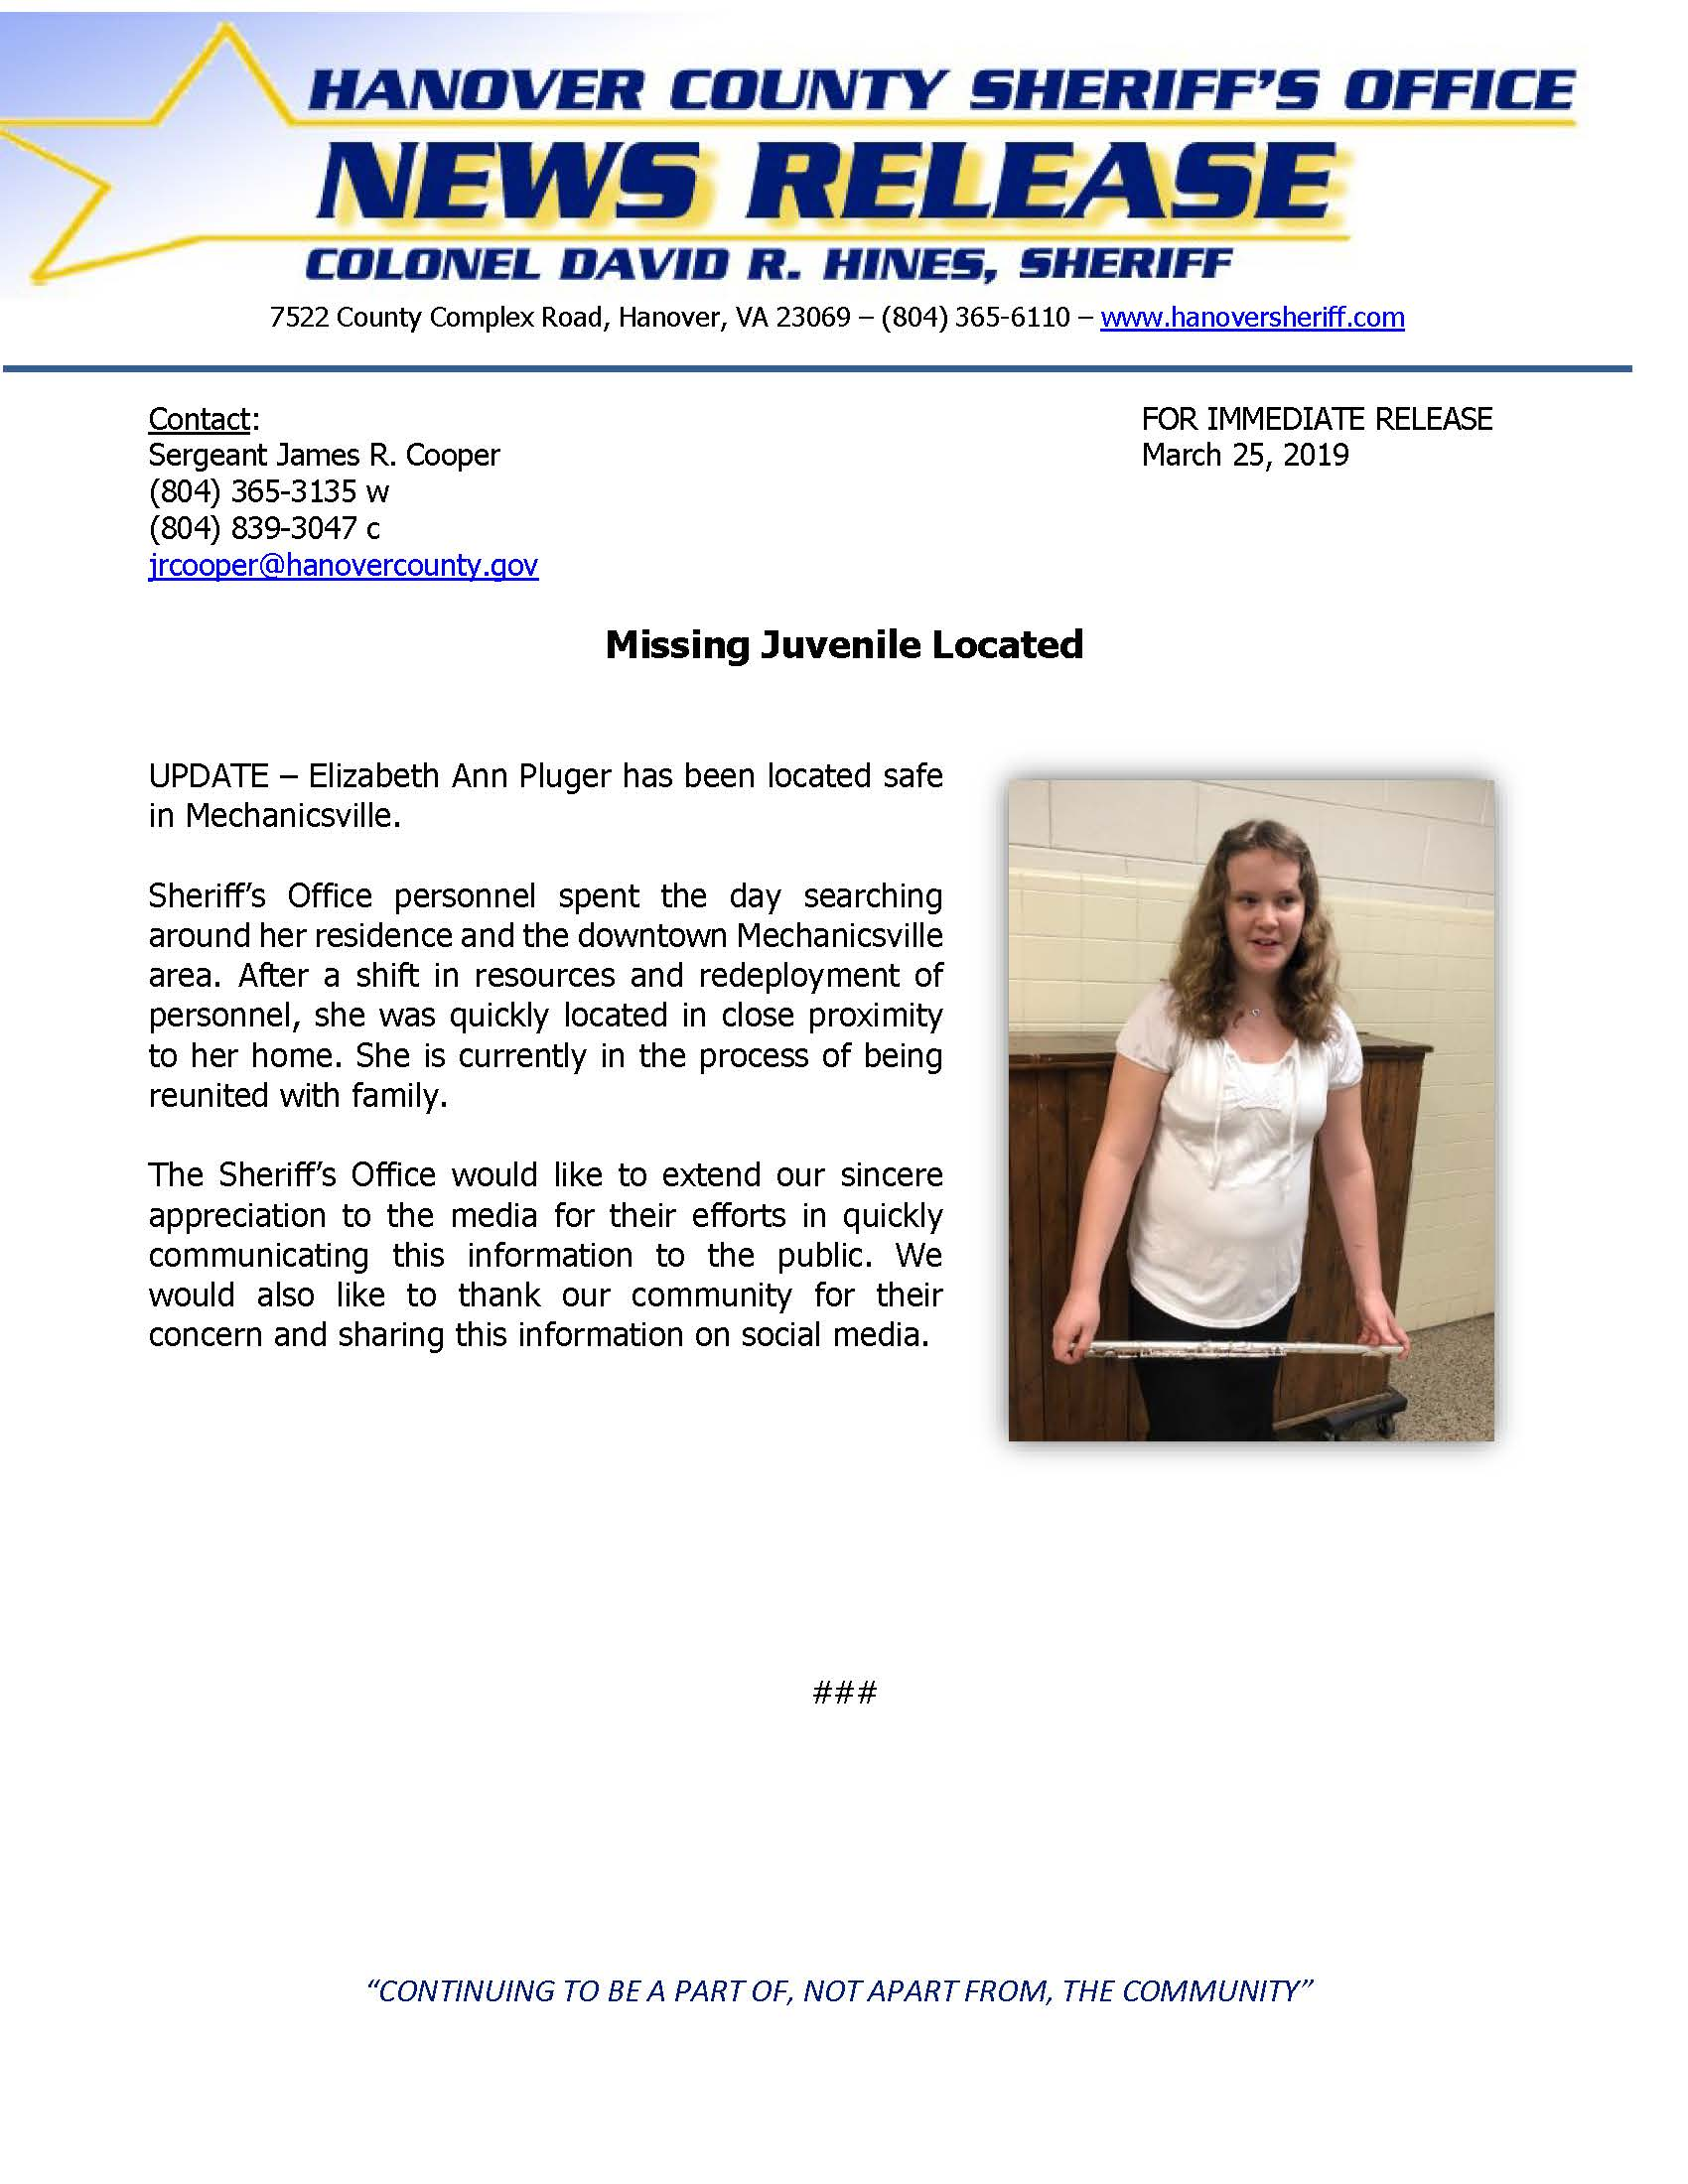 HCSO - Missing Juvenile Elizabeth Pluger LOCATED- March 25, 2019